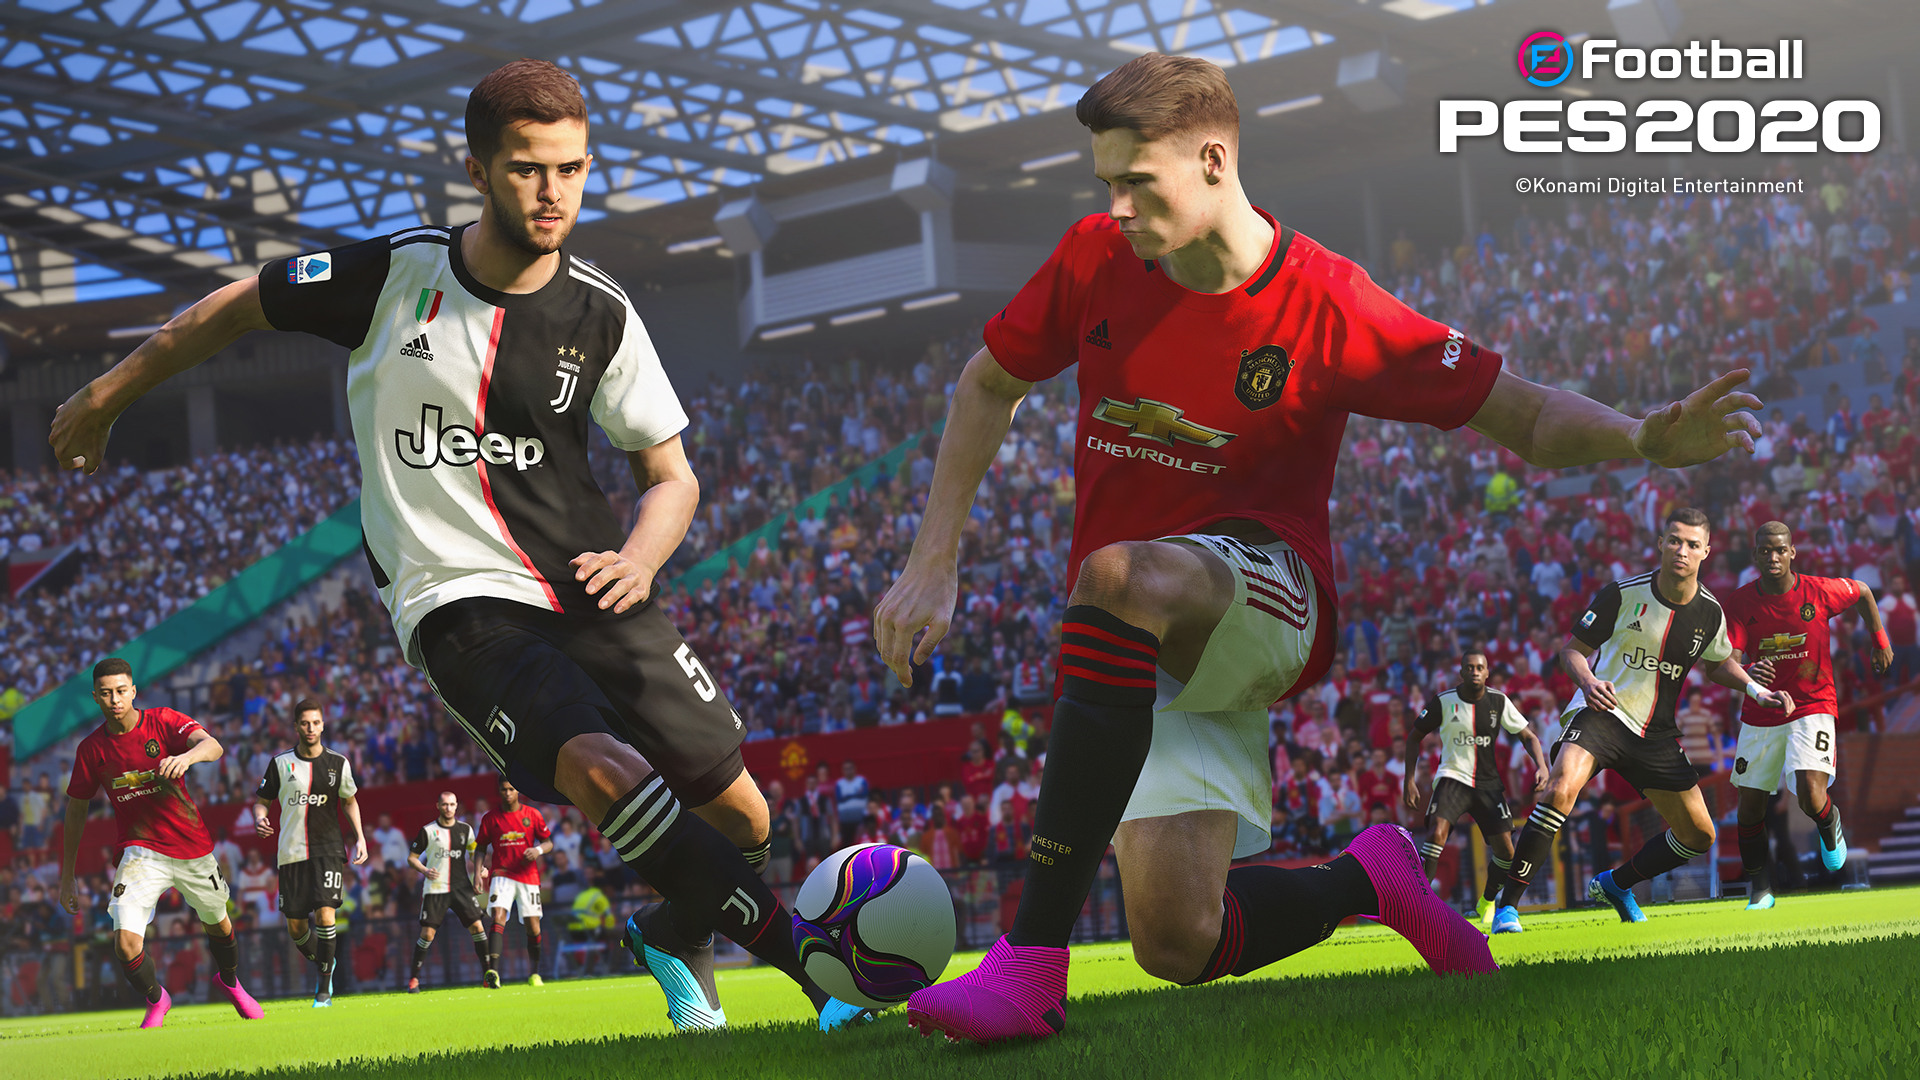 Pro Evolution Soccer wallpaper 2020